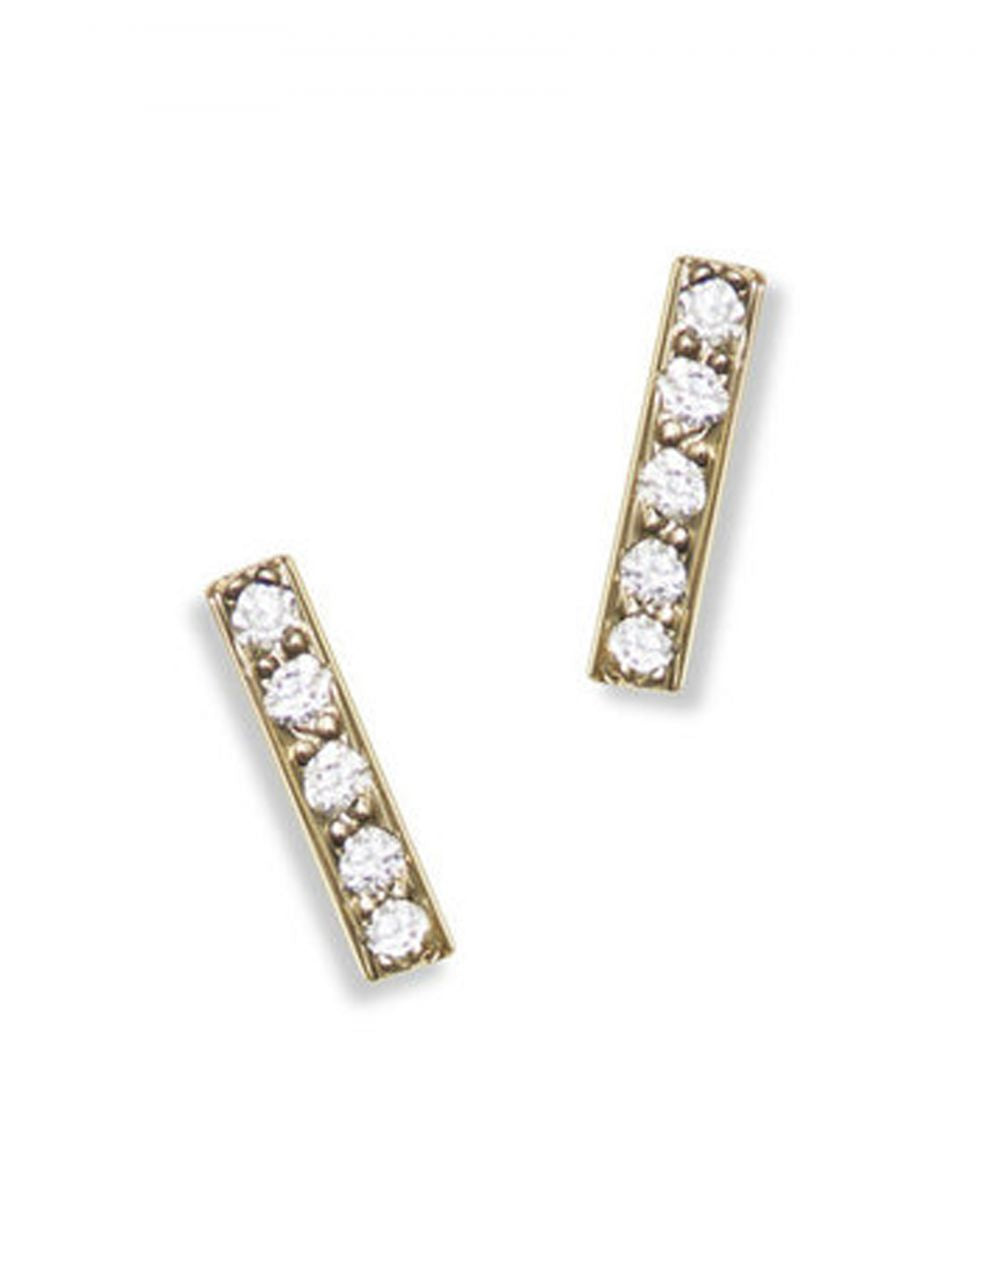 Mini Pavé Bar Stud<br /><i><small>14K Yellow Gold with White Diamonds</small></i><br /> - Eddera